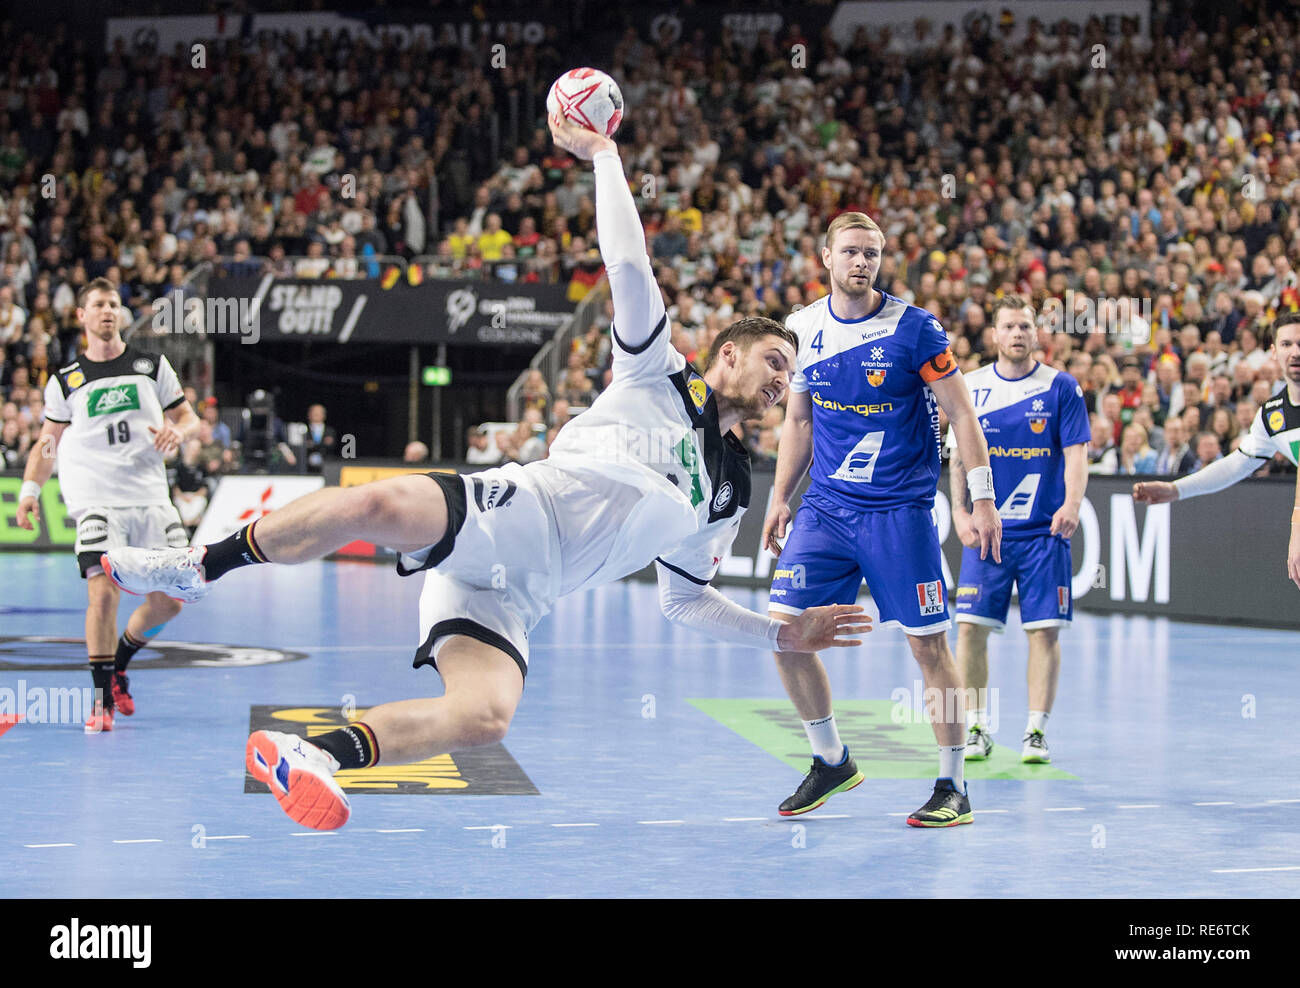 Jump shot Hendrik PEKELER (GER), action, r. Aron PALMARSSON (ISL). Main round Group I, Germany (GER) - Iceland (ISL) 24 - 19, on 01/19/2019 in Koeln/Germany. Handball World Cup 2019, from 10.01. - 27.01.2019 in Germany/Denmark. | usage worldwide Stock Photo